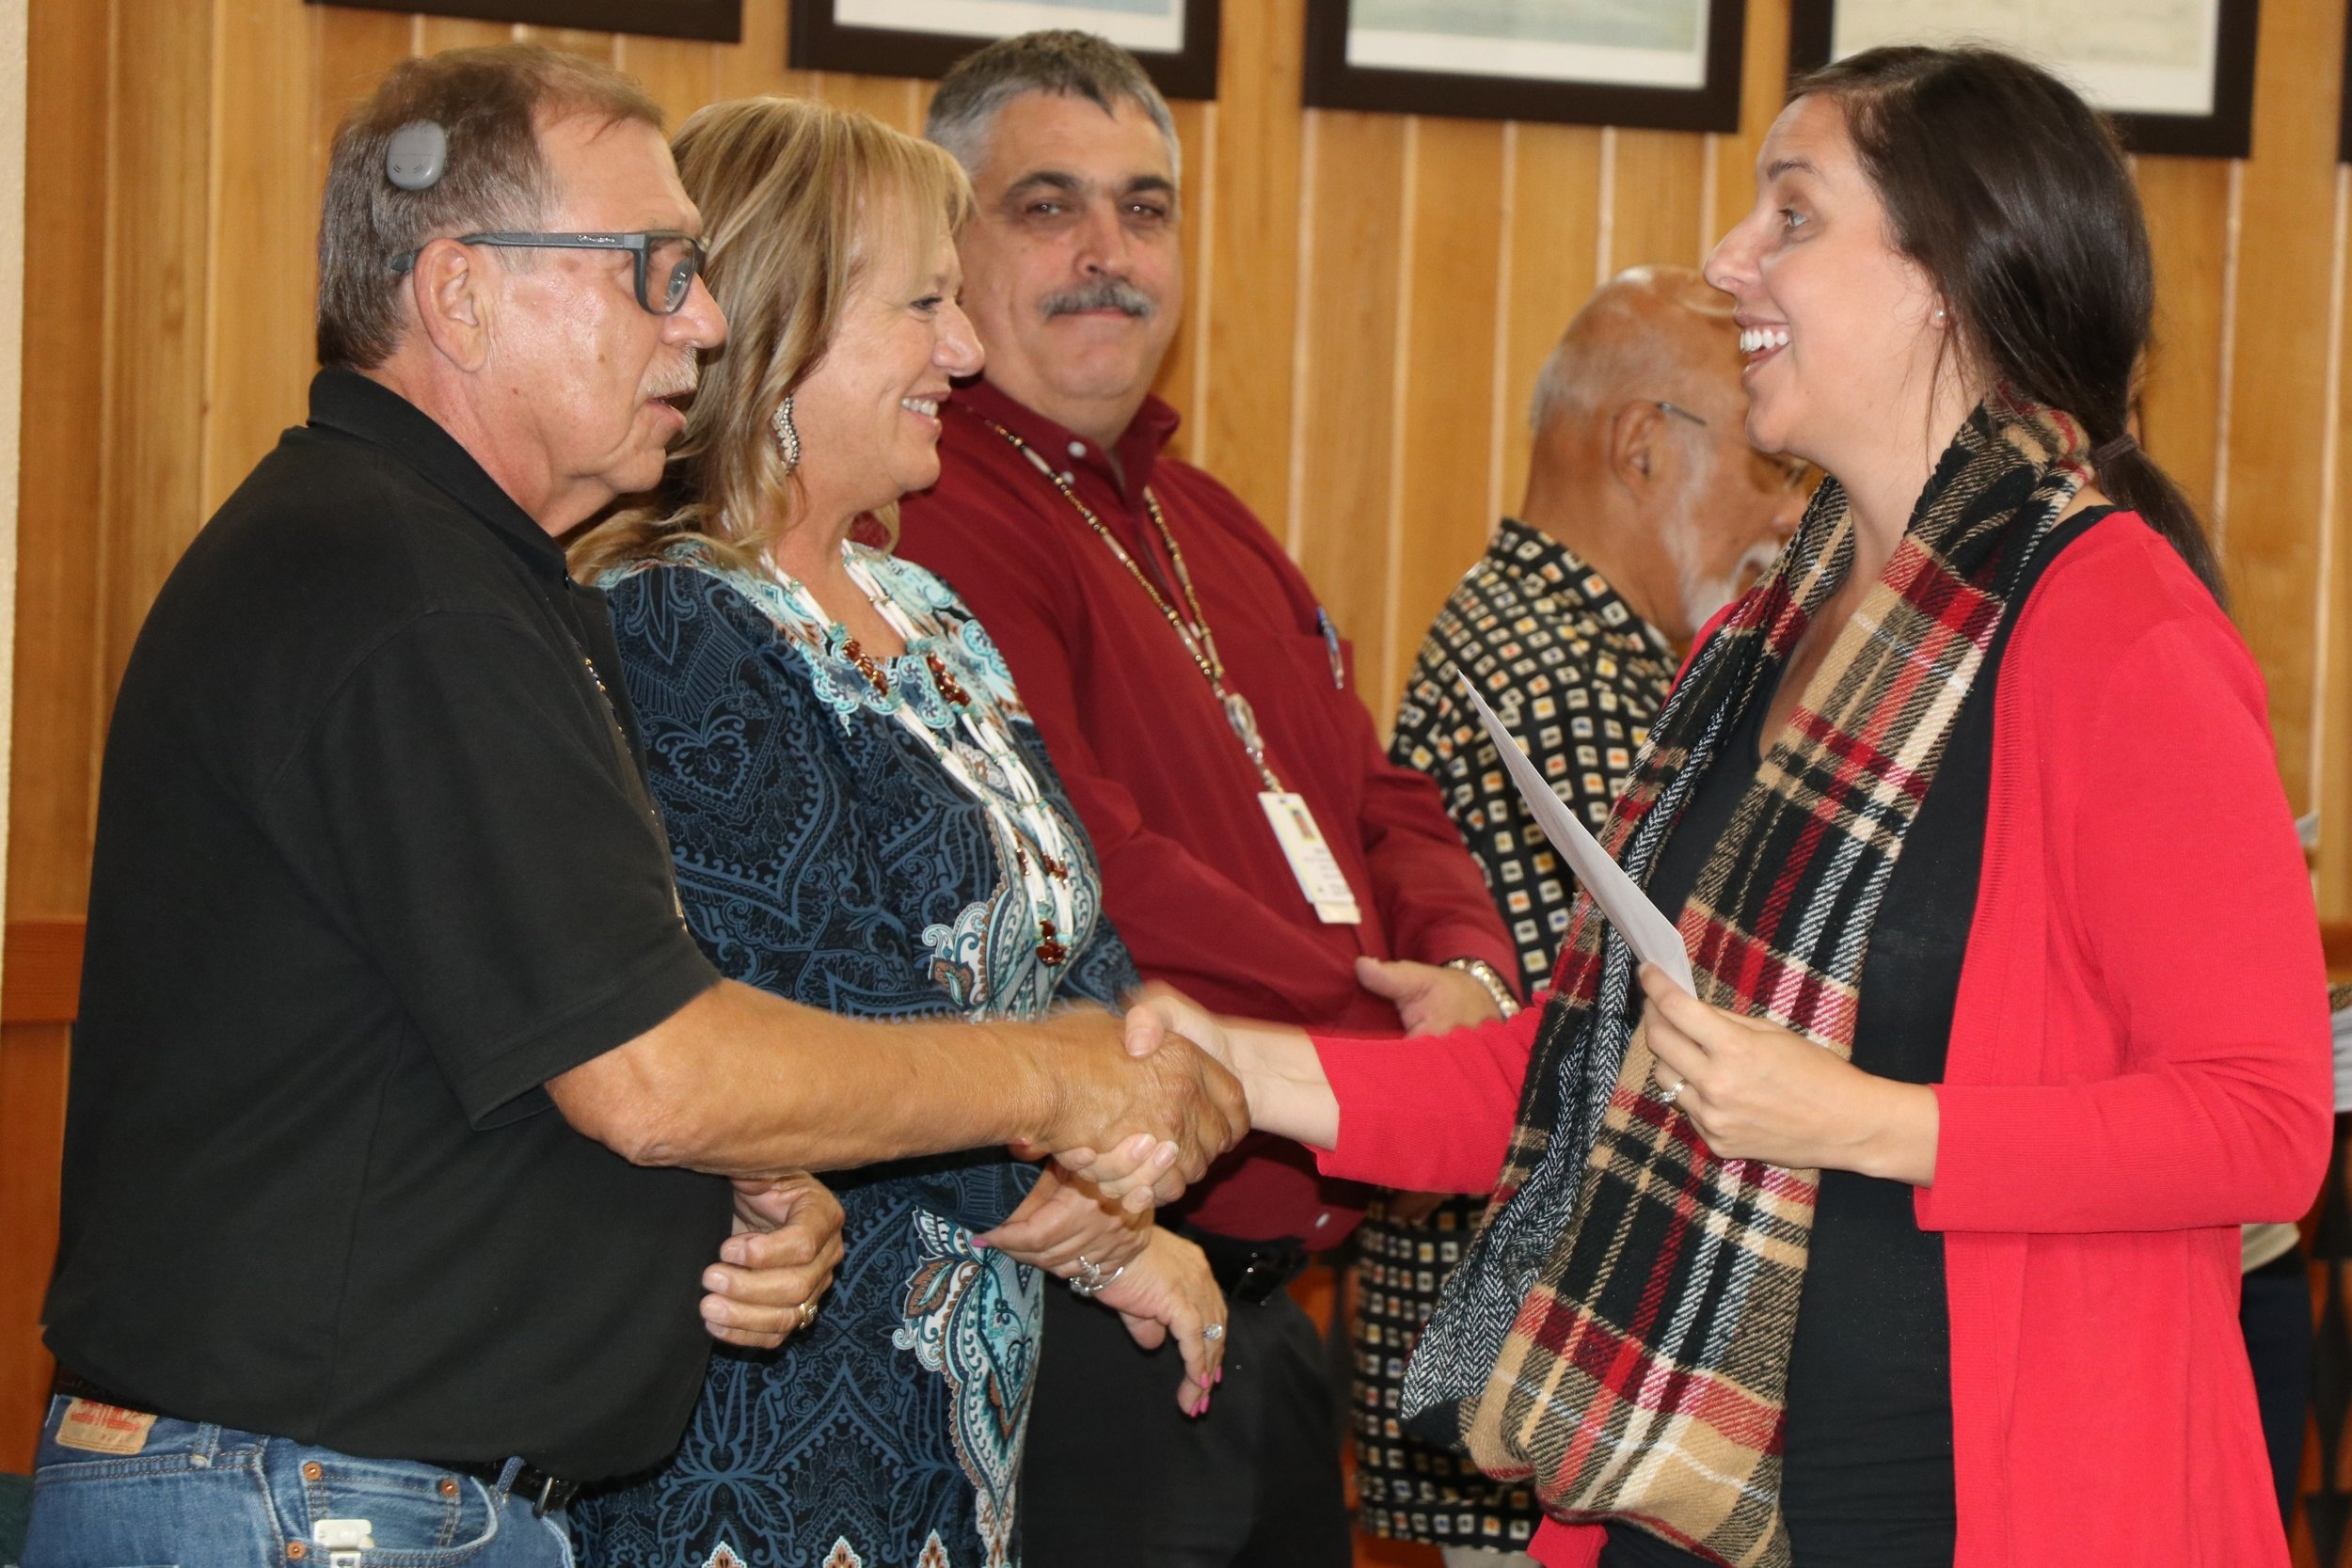 Becca Marx, grant writer for Looking Glass, accepts award and shakes hands with Spirit Mountain Community Fund Trustees (left to right) Jack Giffen, Jr, Denise Harvey, Ron Reibach, and Sho Dozono.